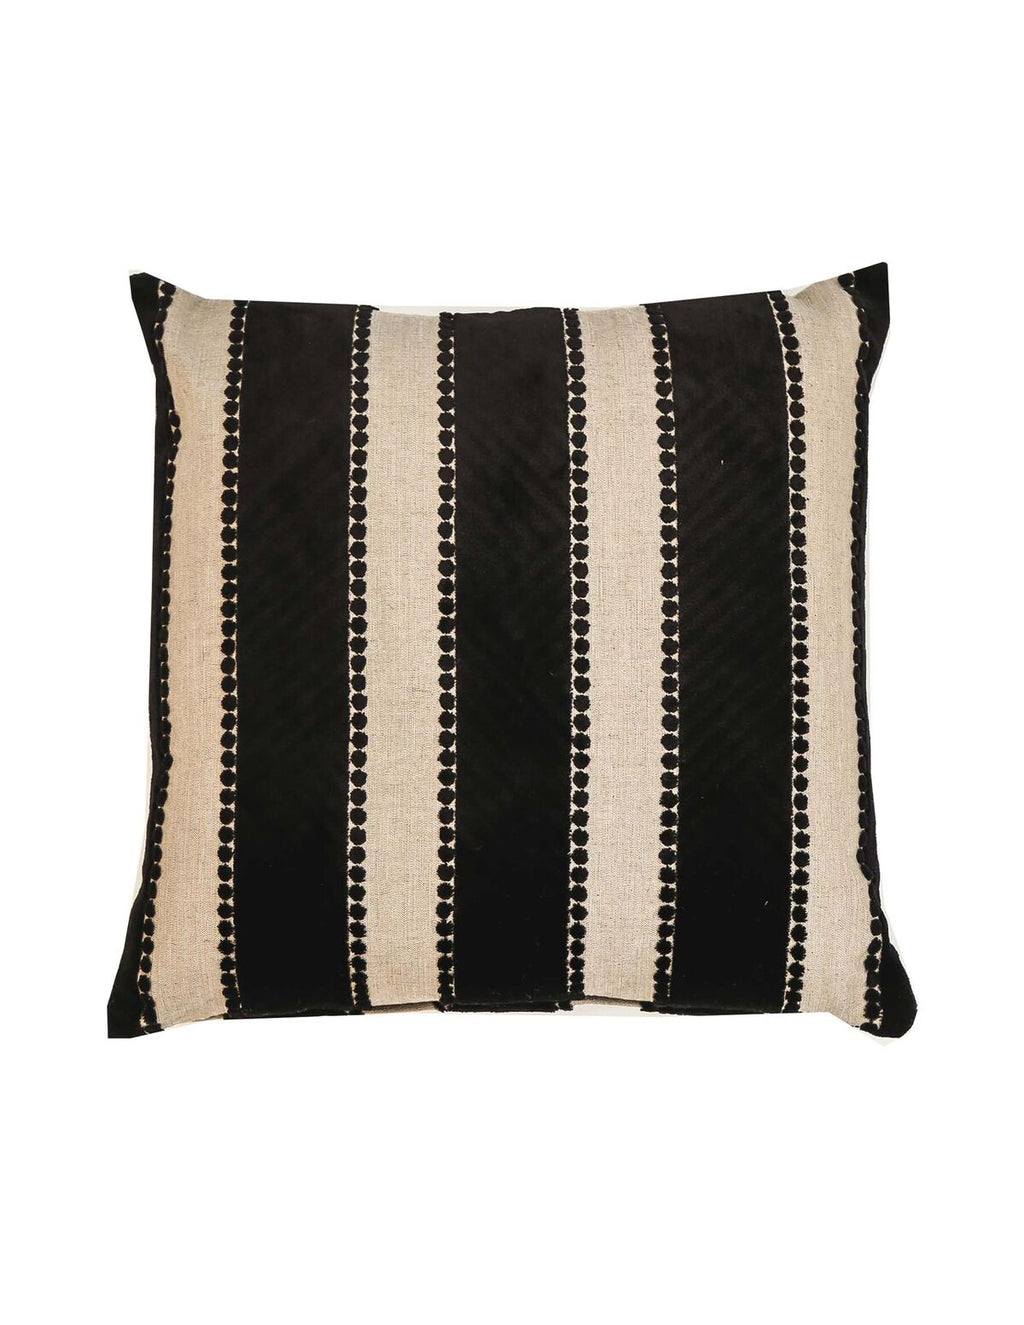 Signature Striped Black and White Cushion